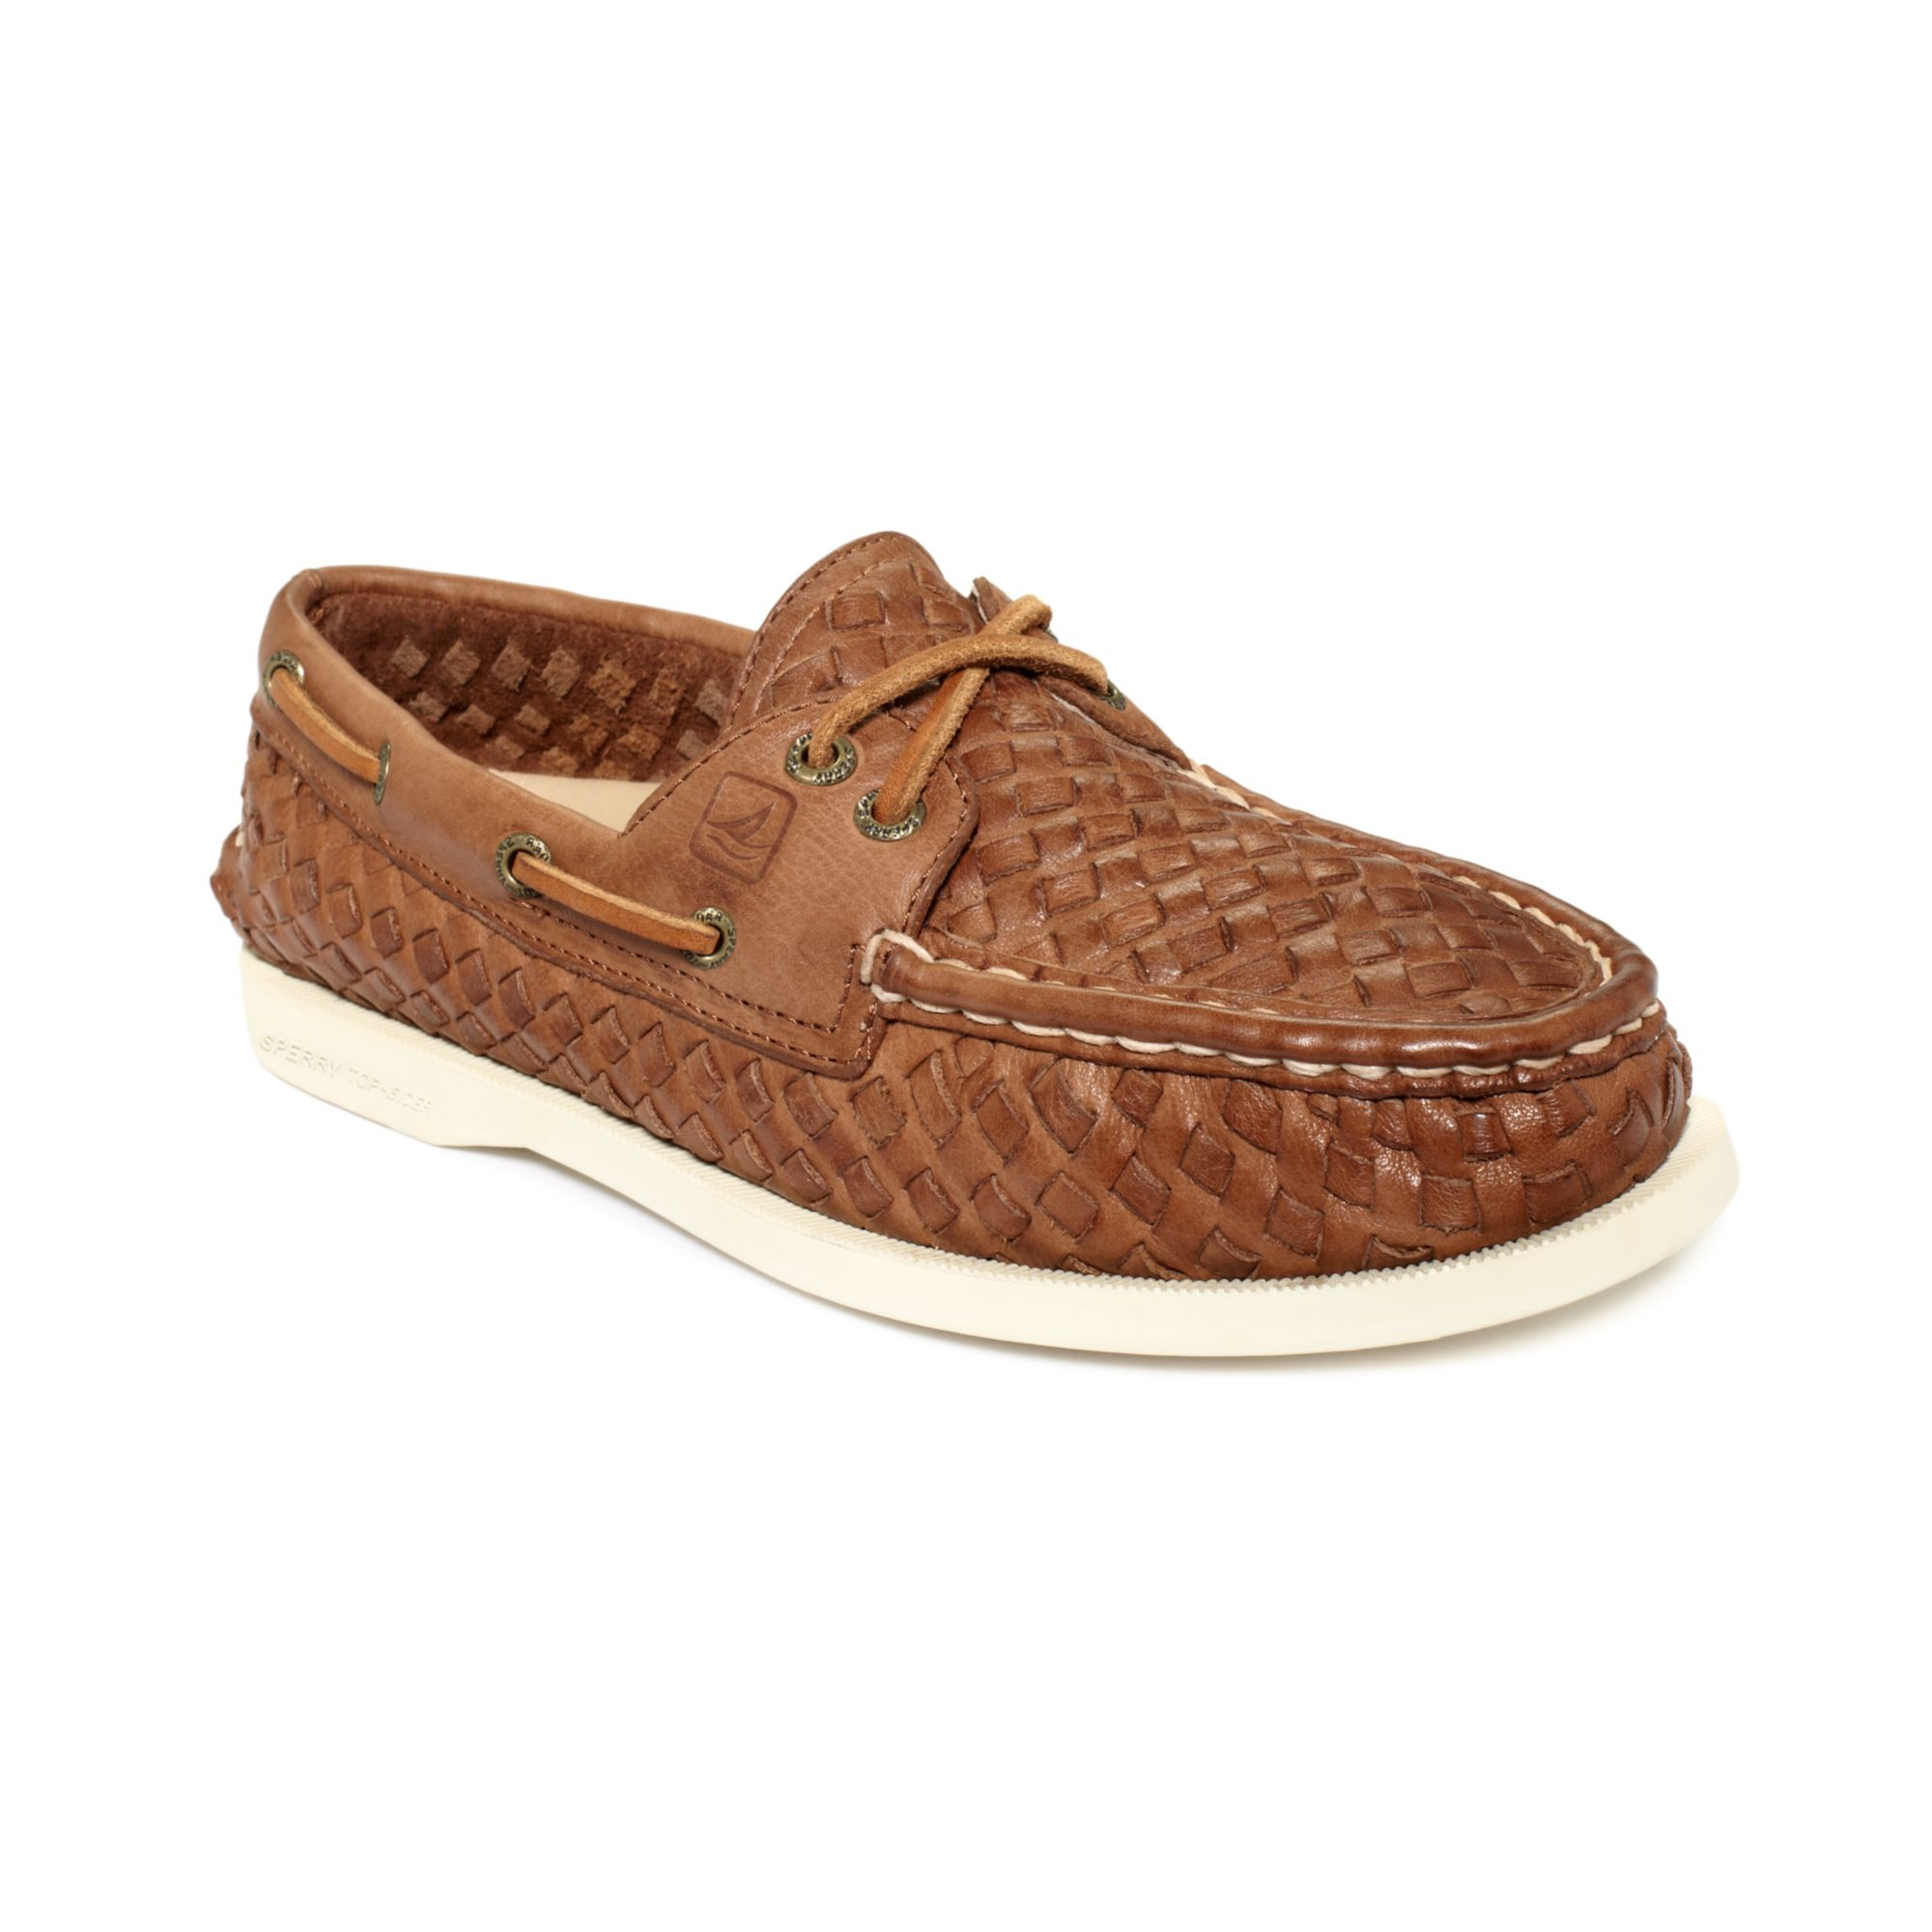 Lyst - Sperry Top-Sider Womens Ao Boat Shoes in Brown 7bfecd0997